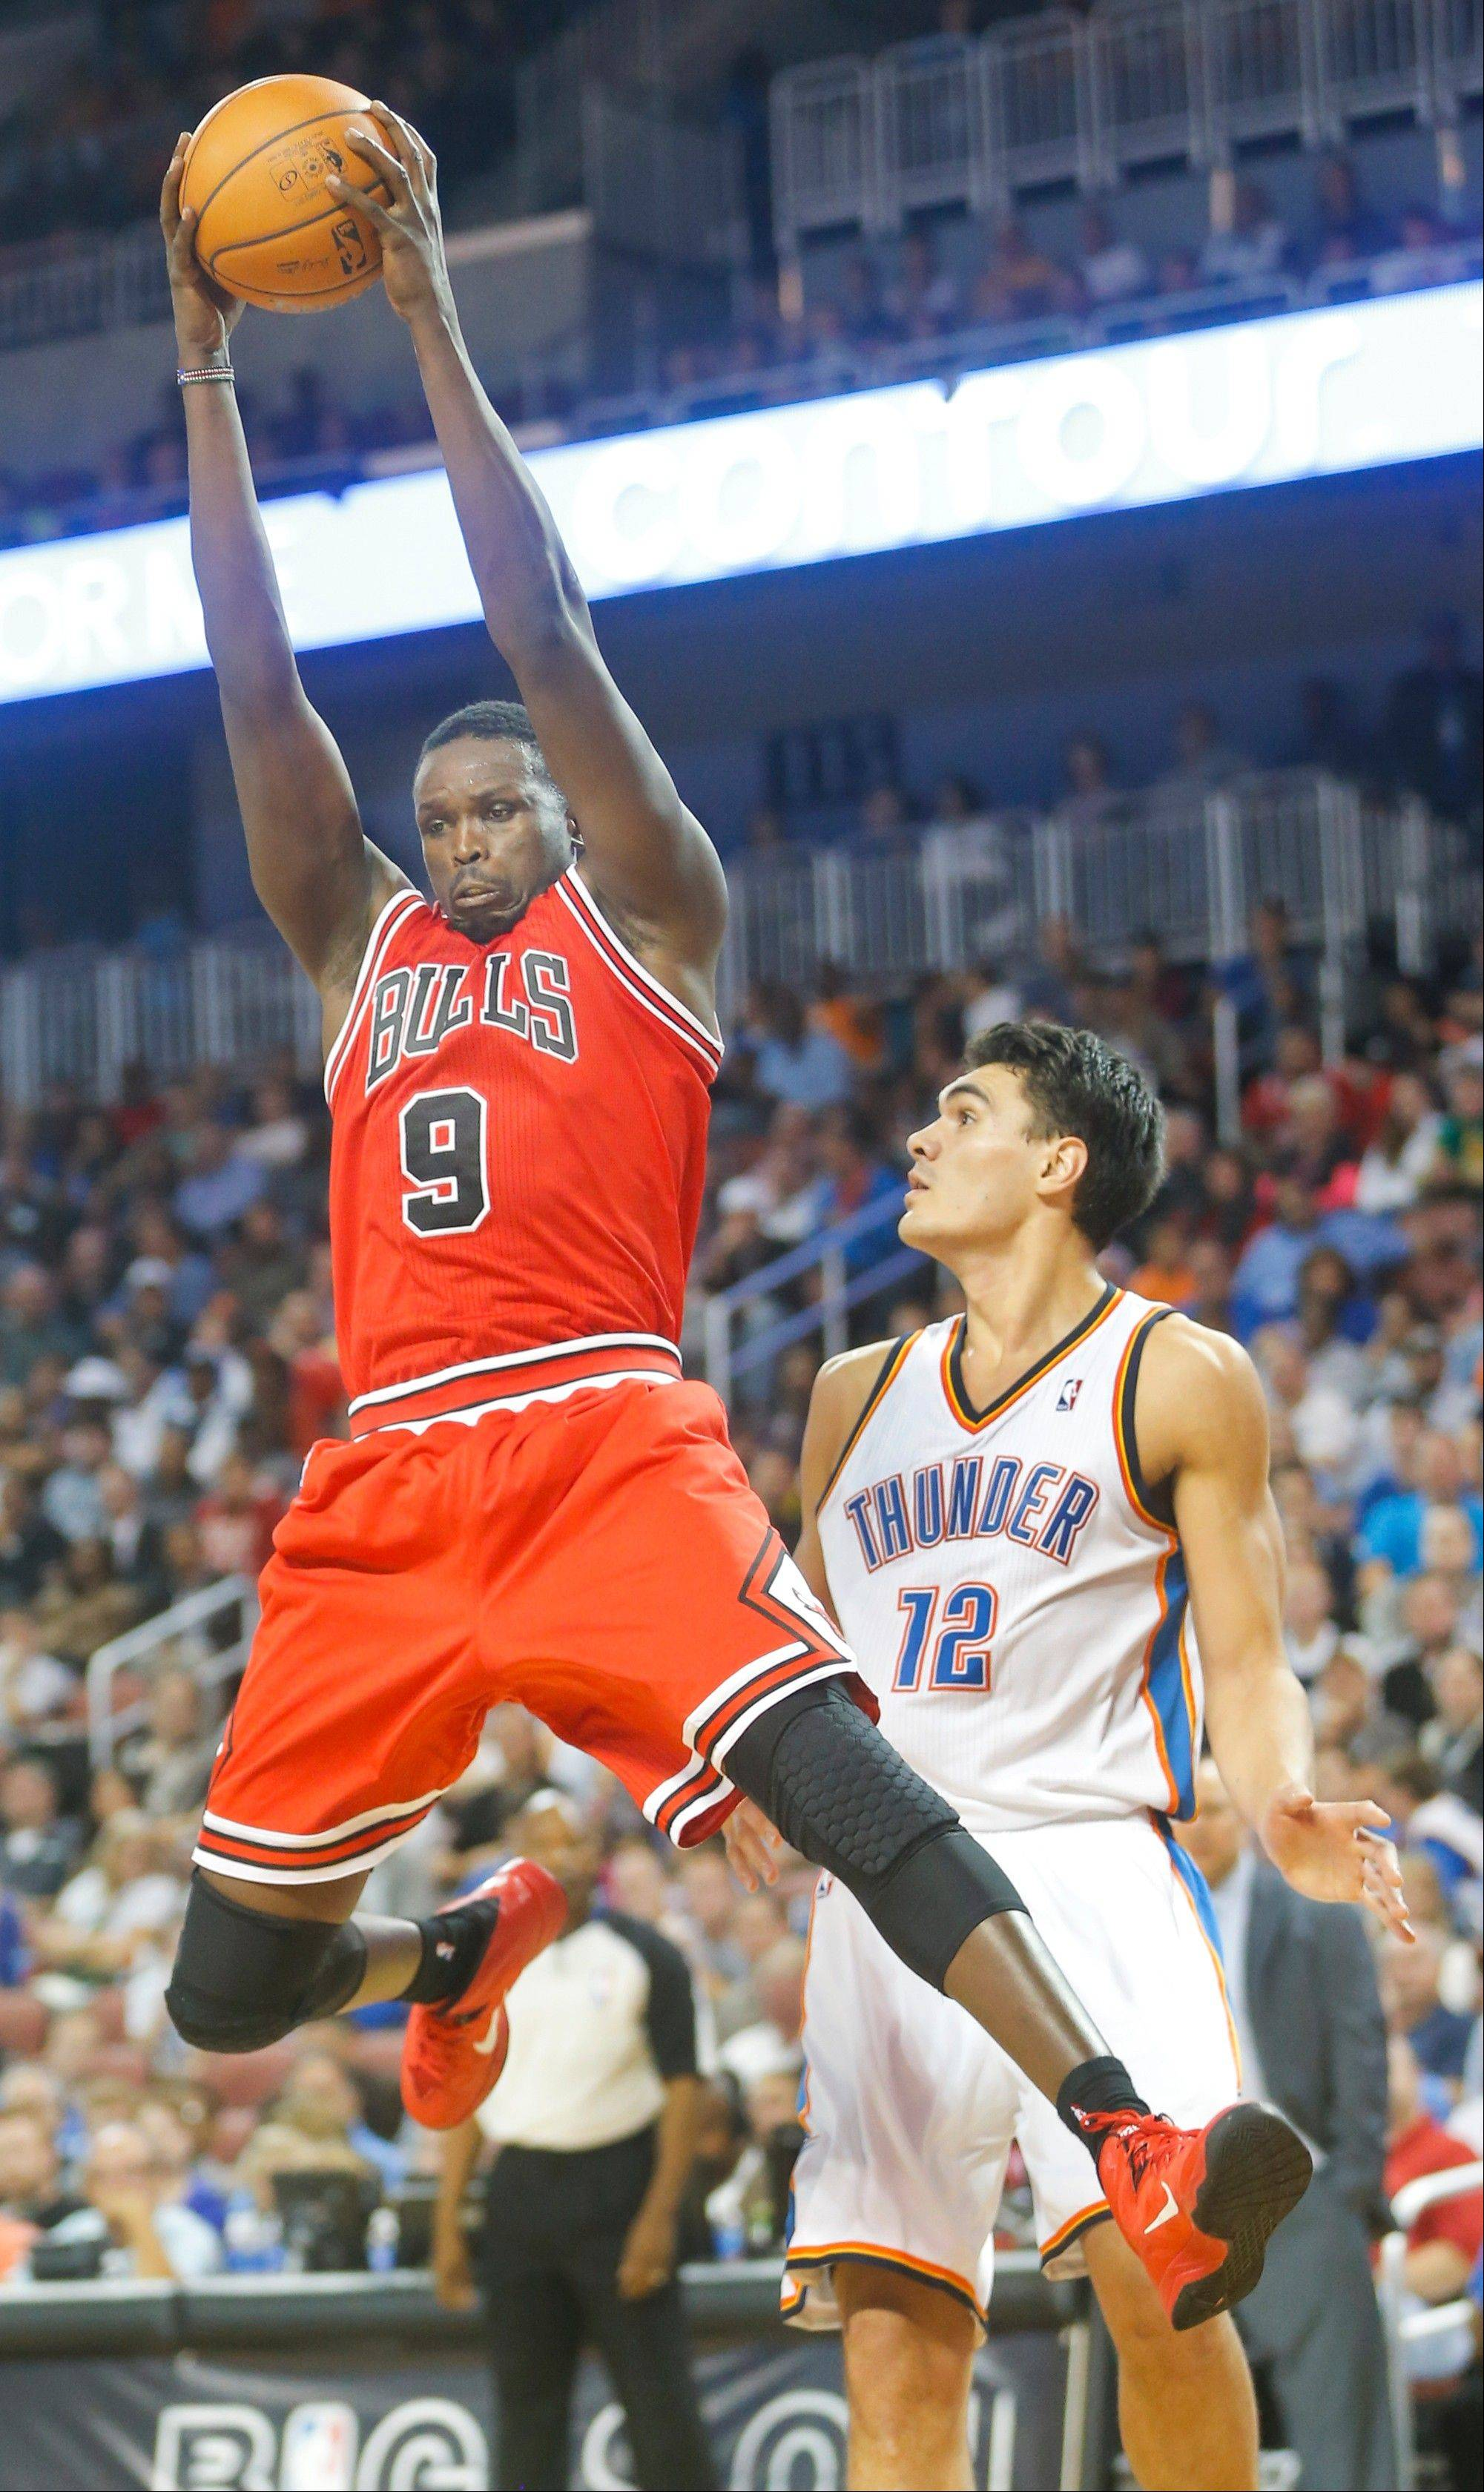 The resolution of Luol Deng's contract status rates a 7 on Mike McGraw's Bulls' Worry Meter